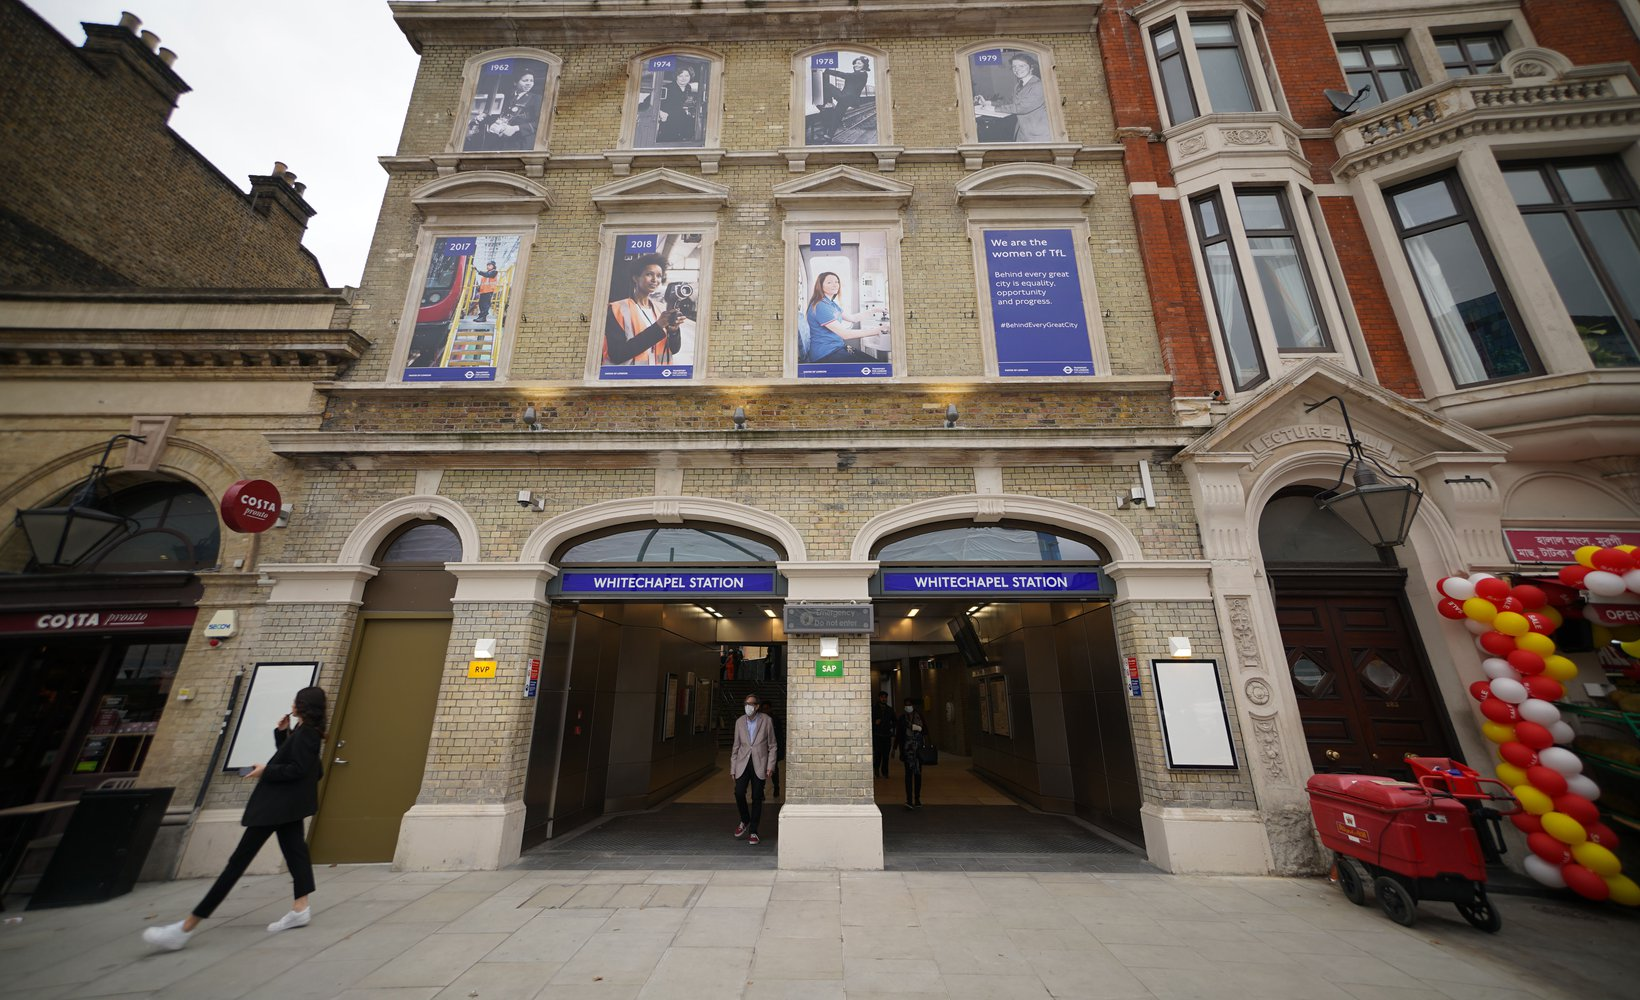 An exterior photograph of the entrance of the newly refurbished Whitechapel station, brick building with two open doorways and two floors above..